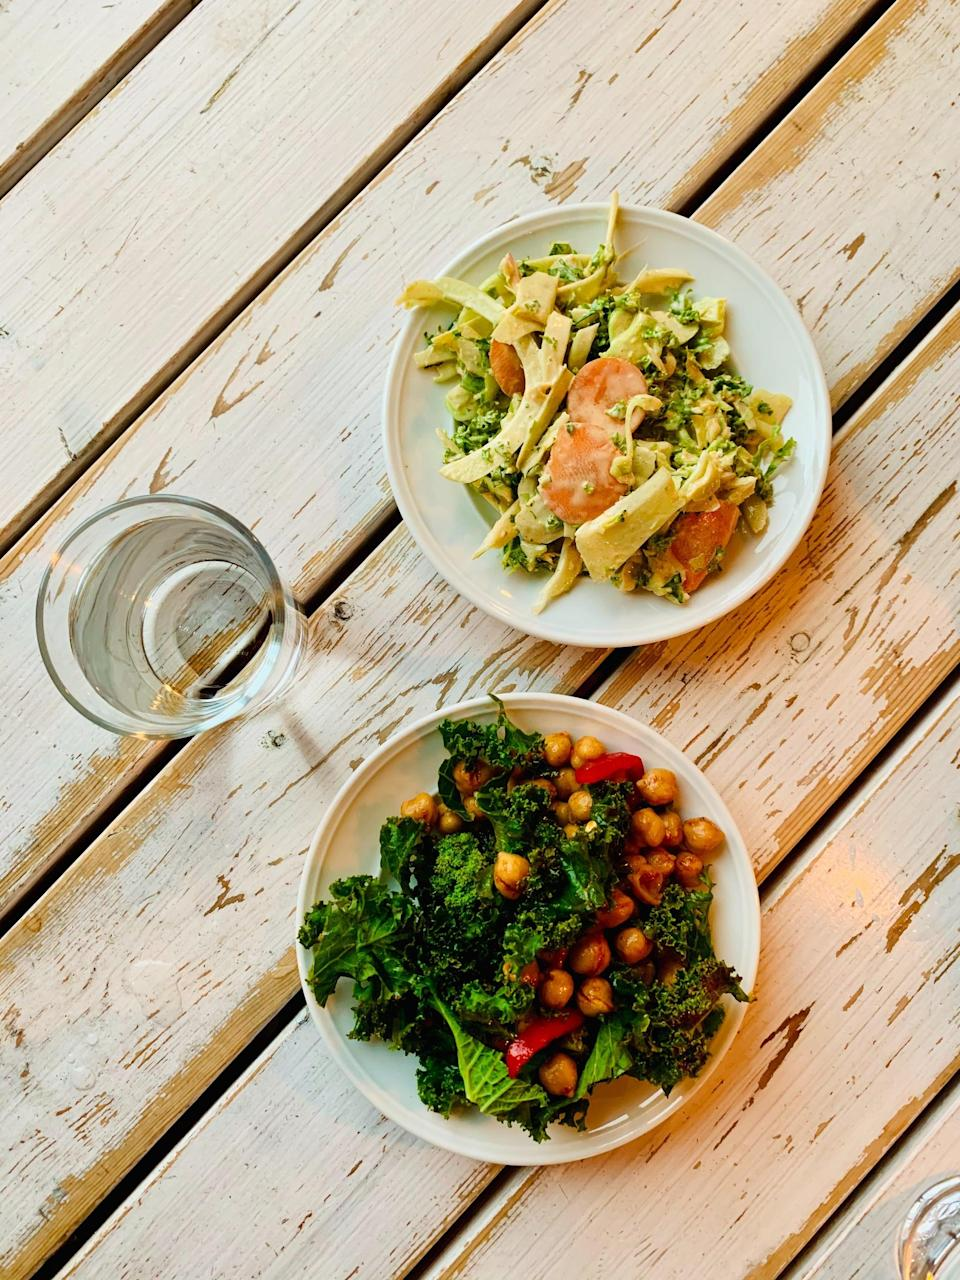 The 7 Most Common Myths About Plant-Based Diets